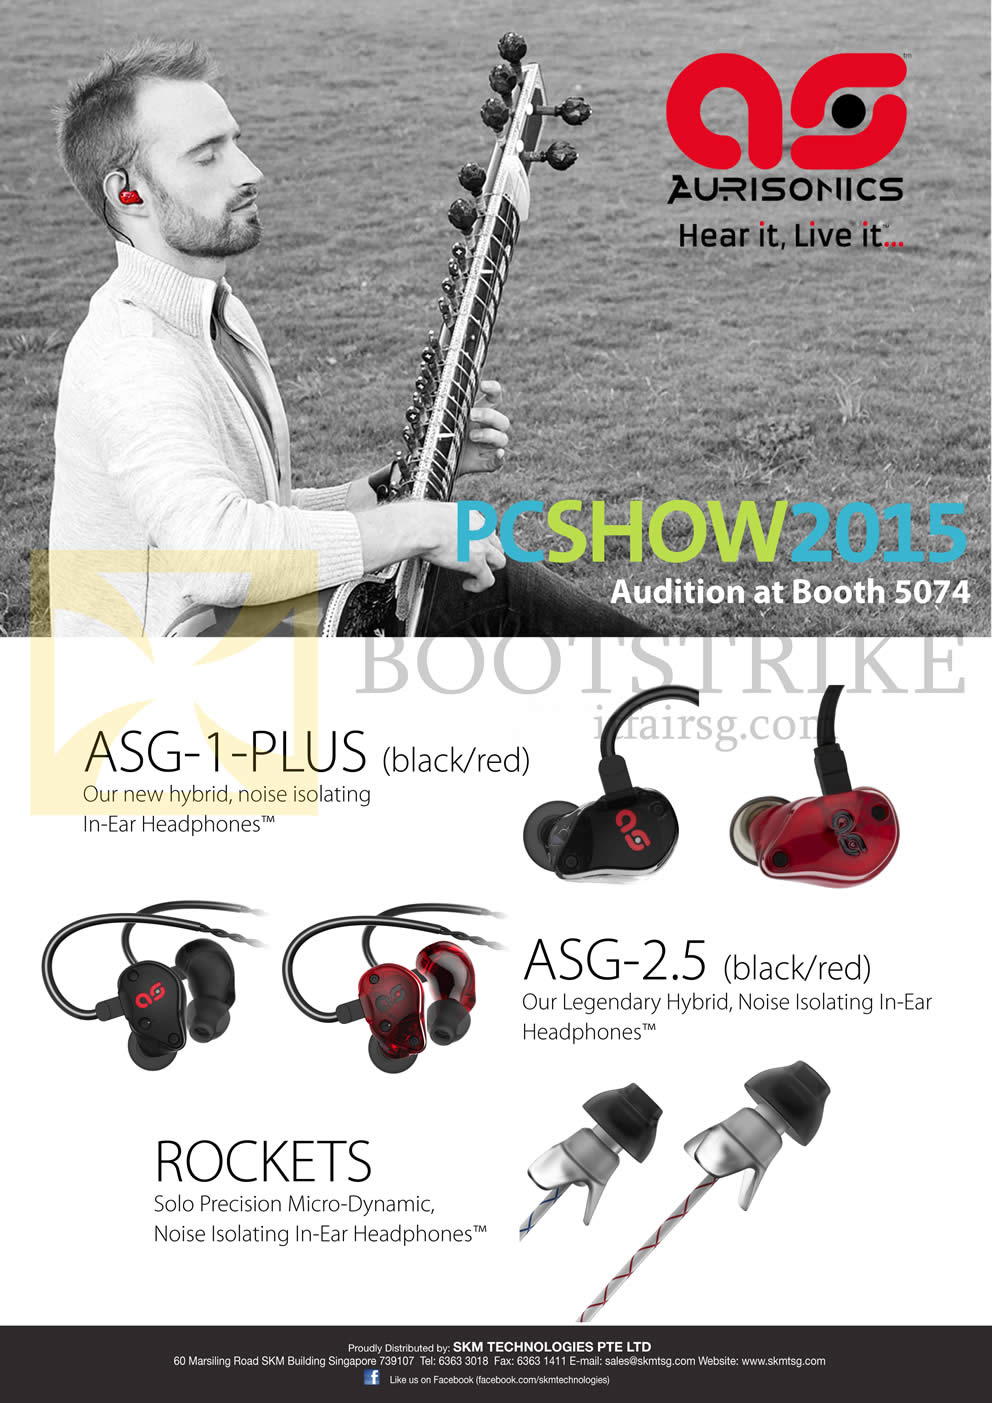 PC SHOW 2015 price list image brochure of Treoo Aurisonics ASG-1-Plus, ASG-2.5, Rockets